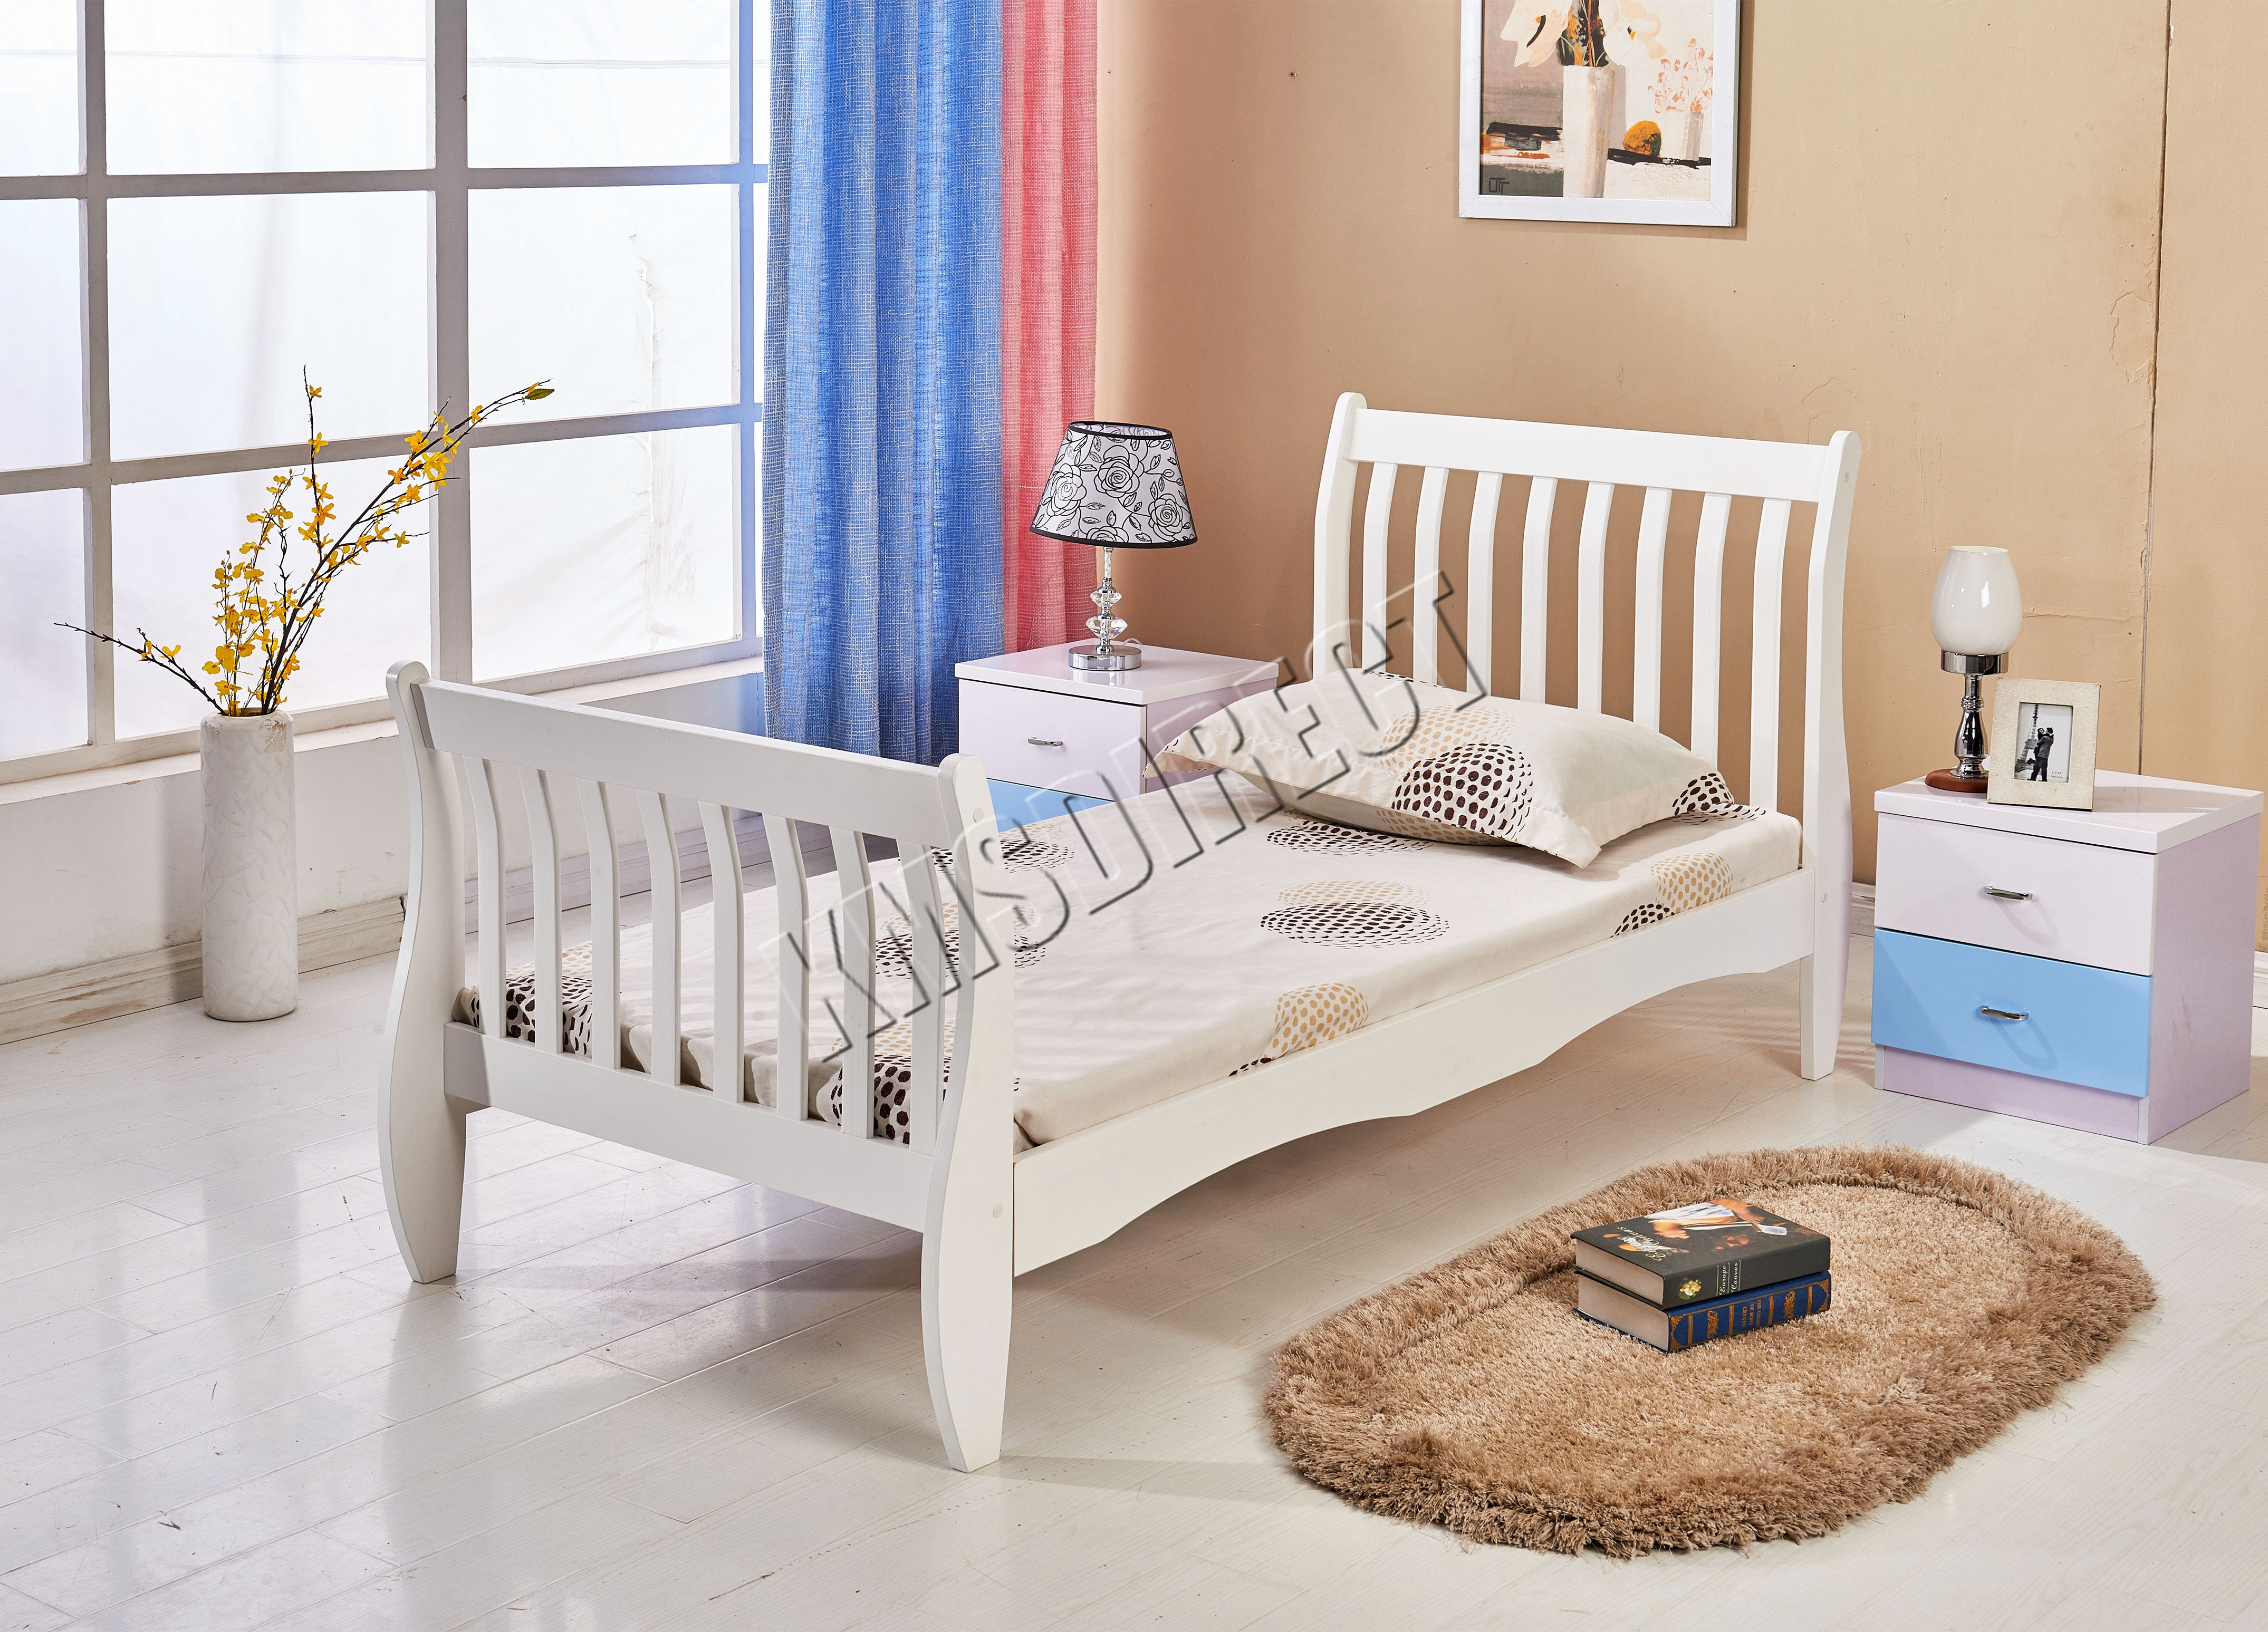 Sentinel Westwood 3ft Single Wooden Sleigh Bed Frame Pine Bedroom Furniture White Wsb01